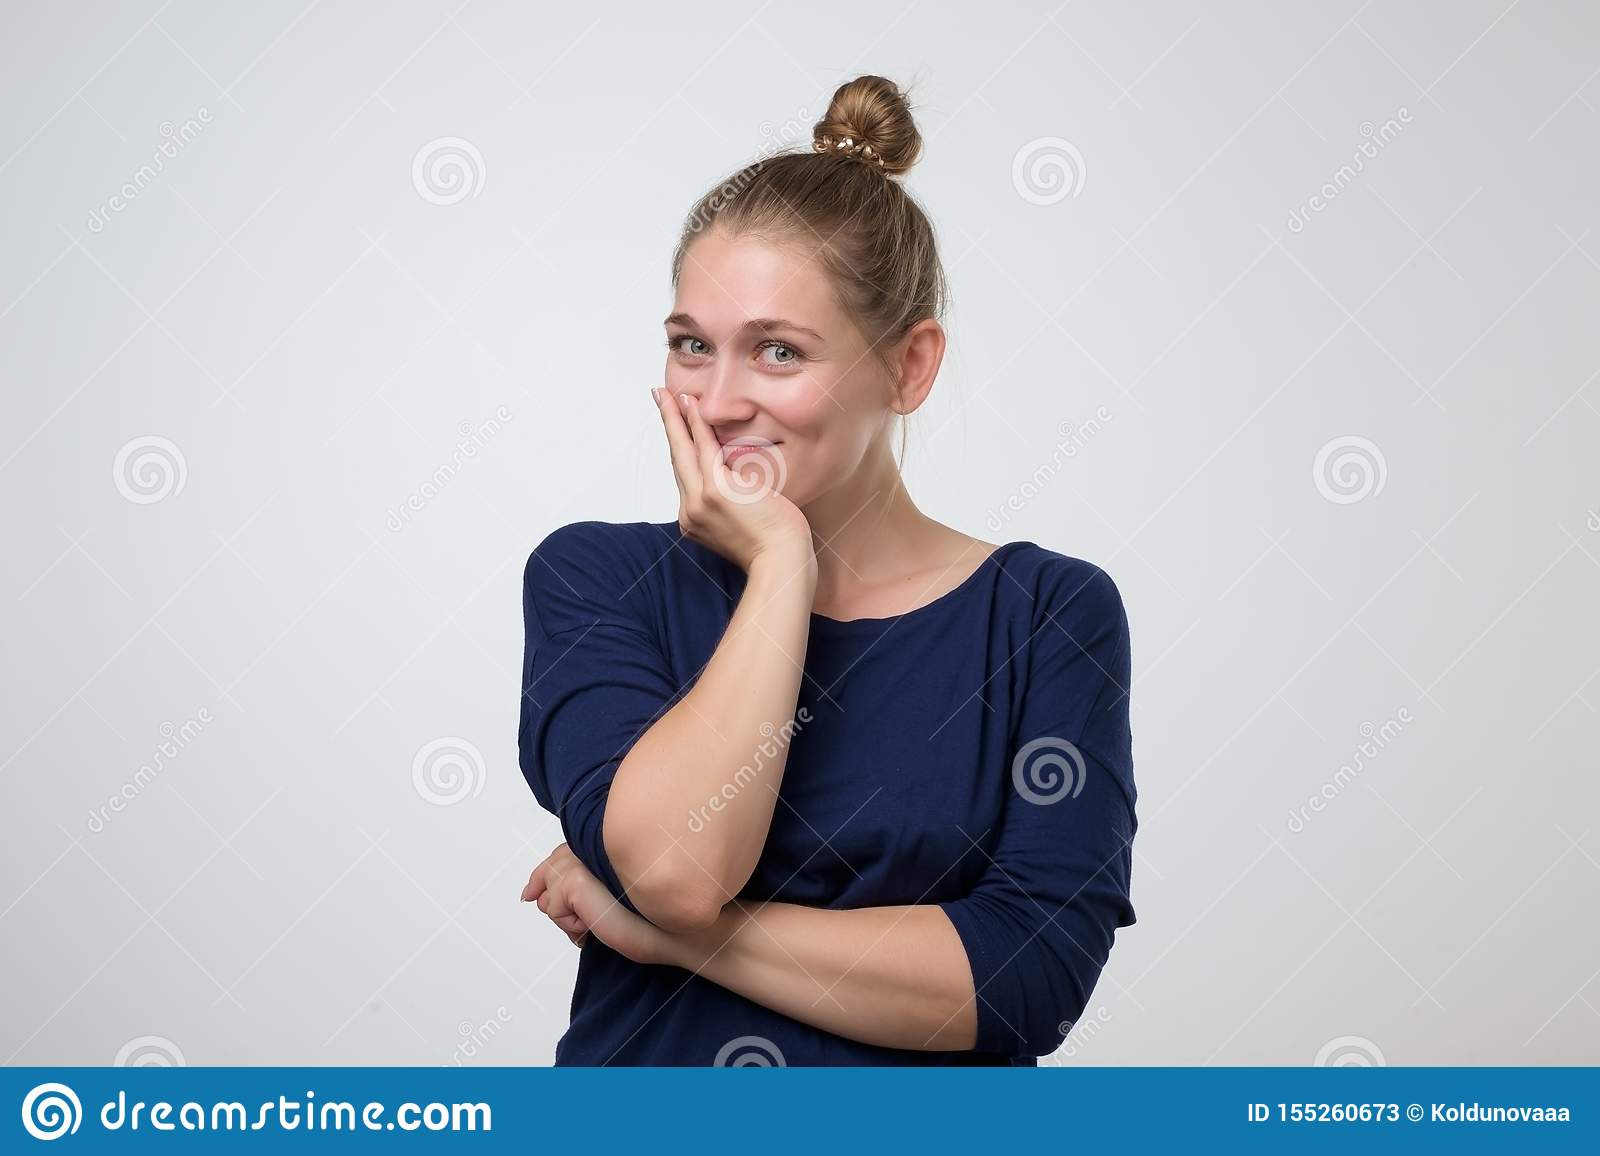 Confident young woman with beautiful smile in studio